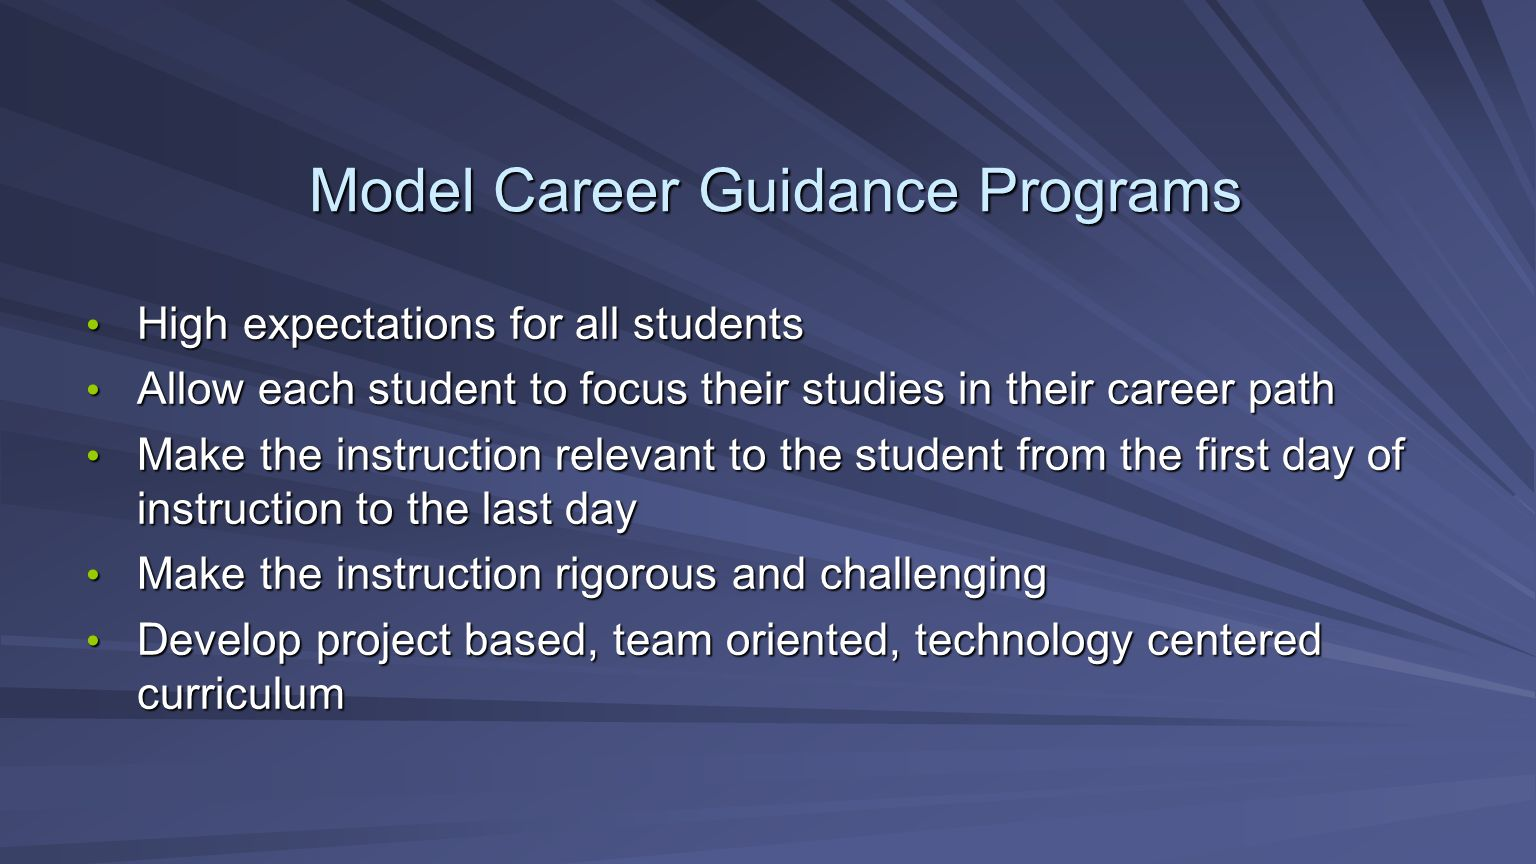 Model Career Guidance Programs High expectations for all students High expectations for all students Allow each student to focus their studies in their career path Allow each student to focus their studies in their career path Make the instruction relevant to the student from the first day of instruction to the last day Make the instruction relevant to the student from the first day of instruction to the last day Make the instruction rigorous and challenging Make the instruction rigorous and challenging Develop project based, team oriented, technology centered curriculum Develop project based, team oriented, technology centered curriculum